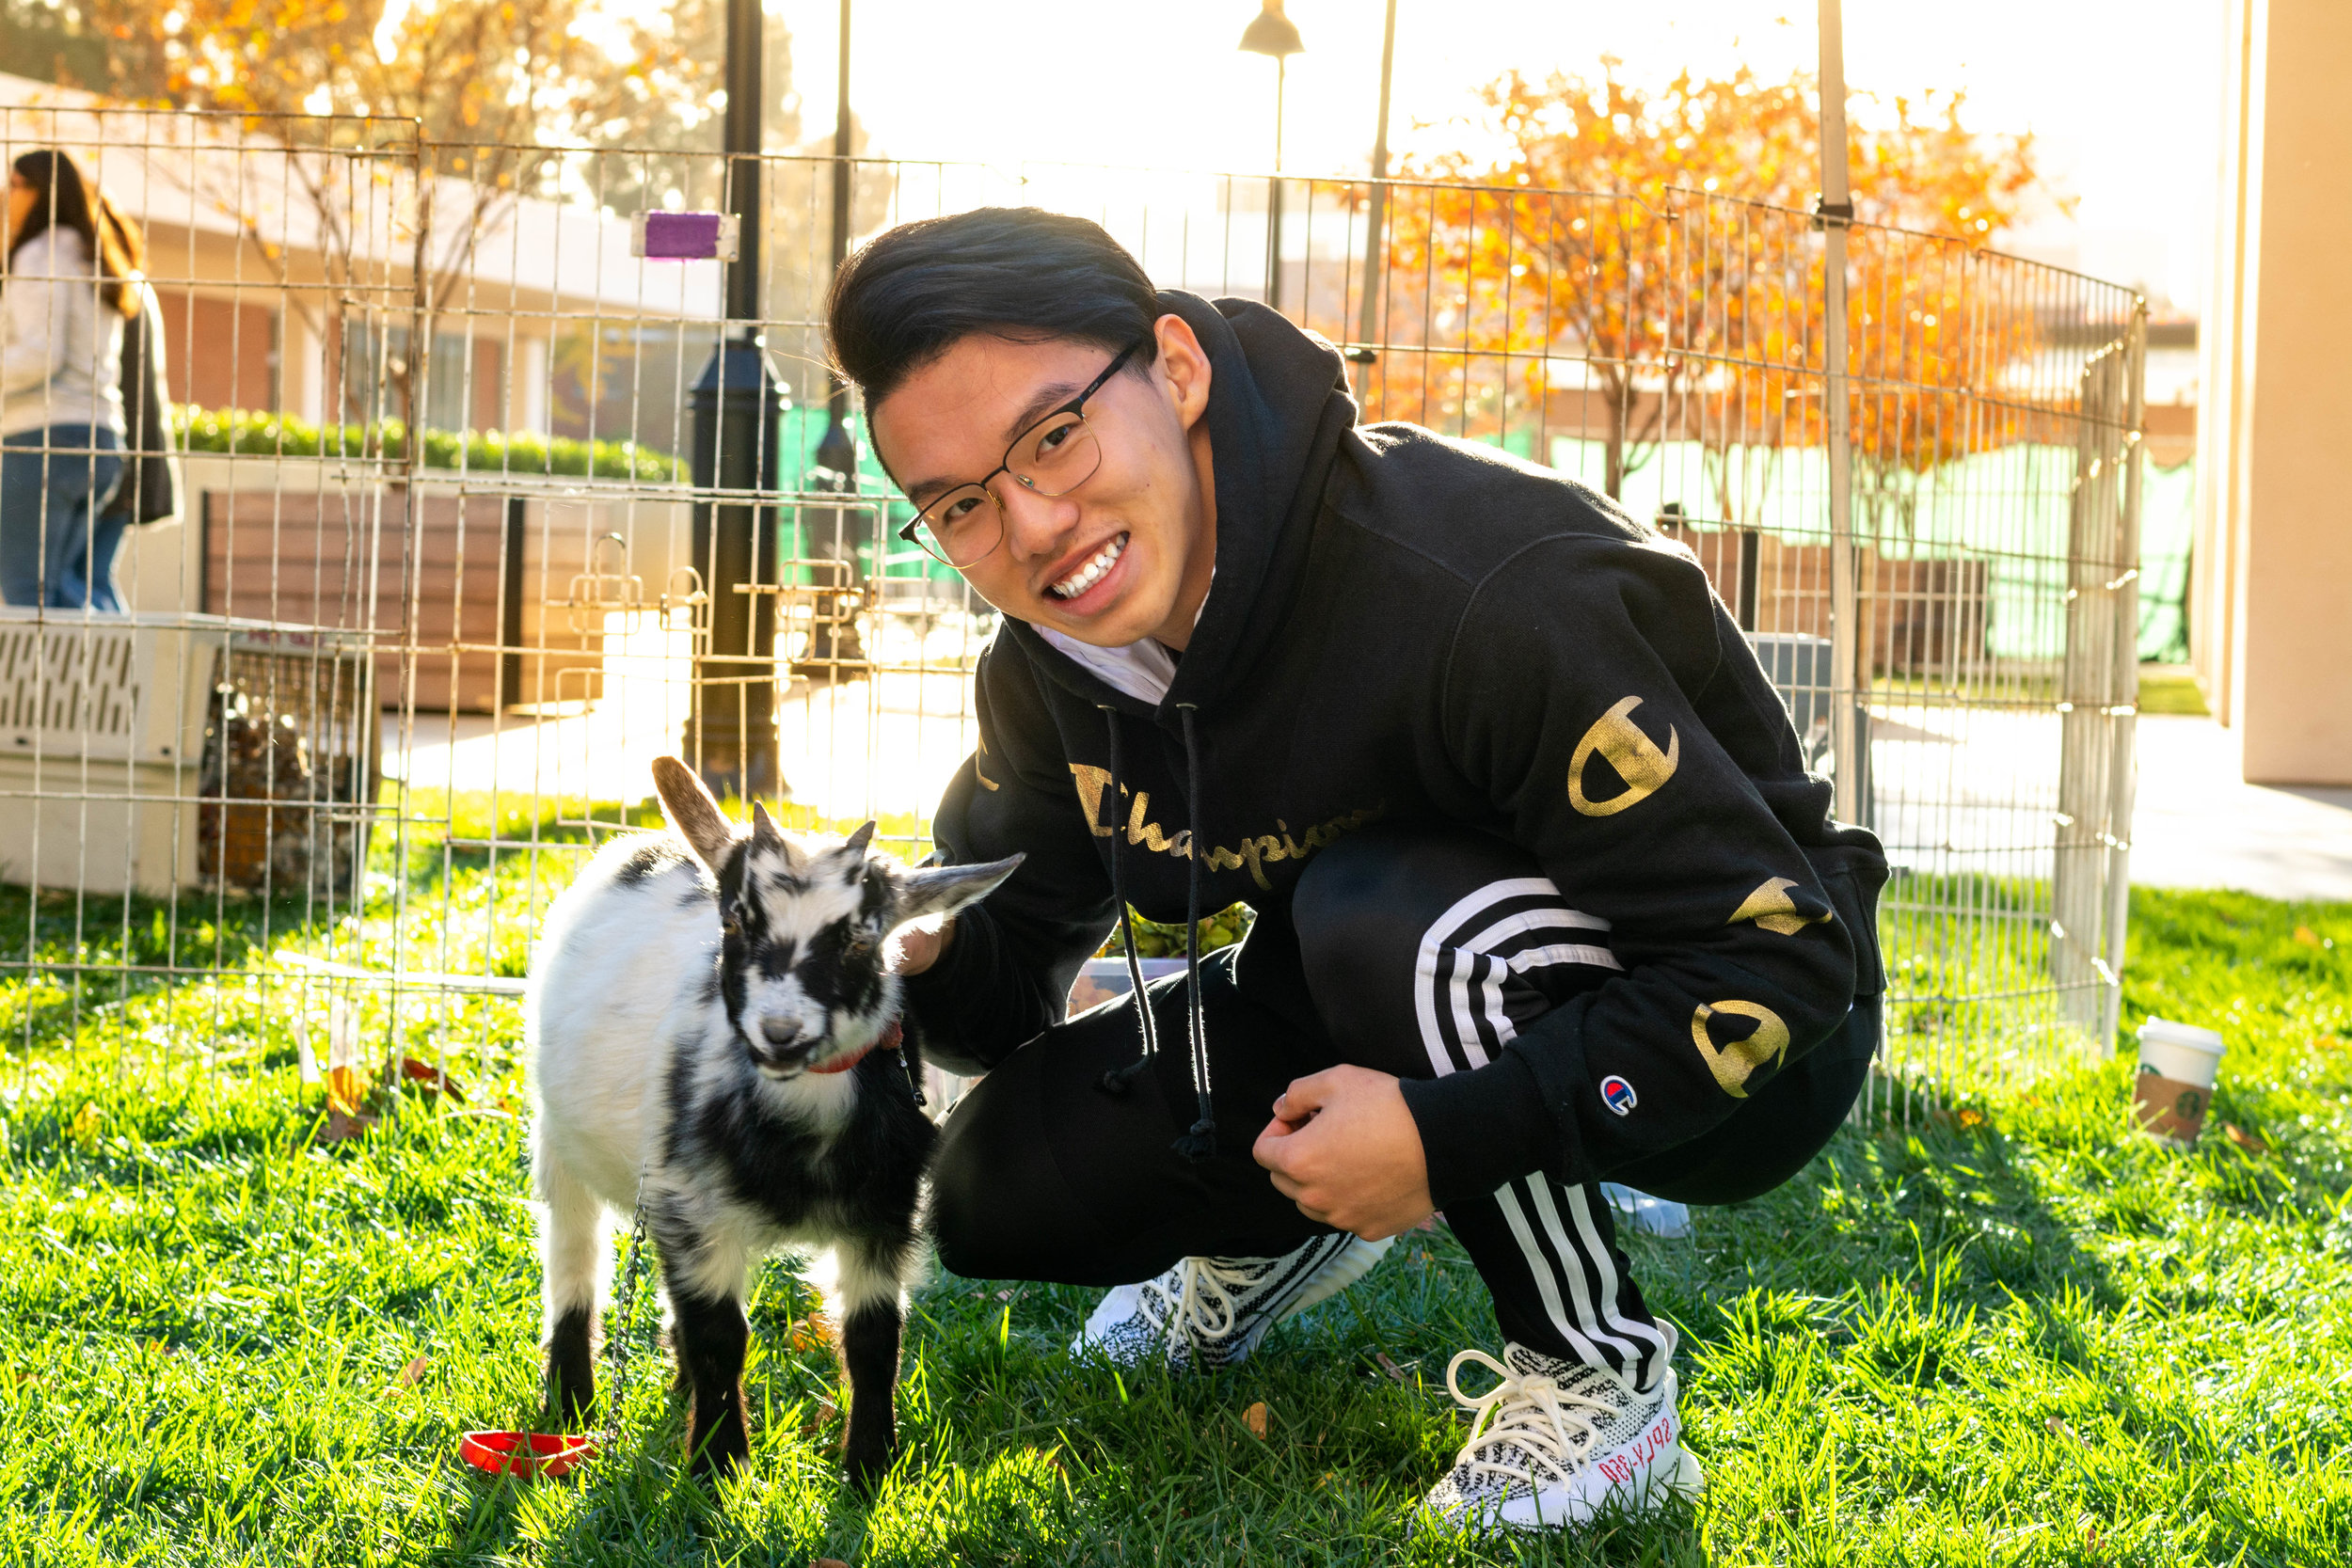 Historian - Jamie PoonHello fellow residences from CV2! I'm from Hayward, California and I went to California Crosspoint Academy High School. My major is Electrical Engineering. I played volleyball and soccer all four years. I listen to all simp music, especially Neyo and Ed Sheeran of high school, and I play table tennis for USA national. I was raised and born in Hong Kong, so I can speak four languages. I have the passion of helping others and volunteering whenever I'm free, and I was a President for Interact club. My goal for this year is to capture all the amazing moment on every single event.  I can't wait to serve as a historian of the year I <3 CV2